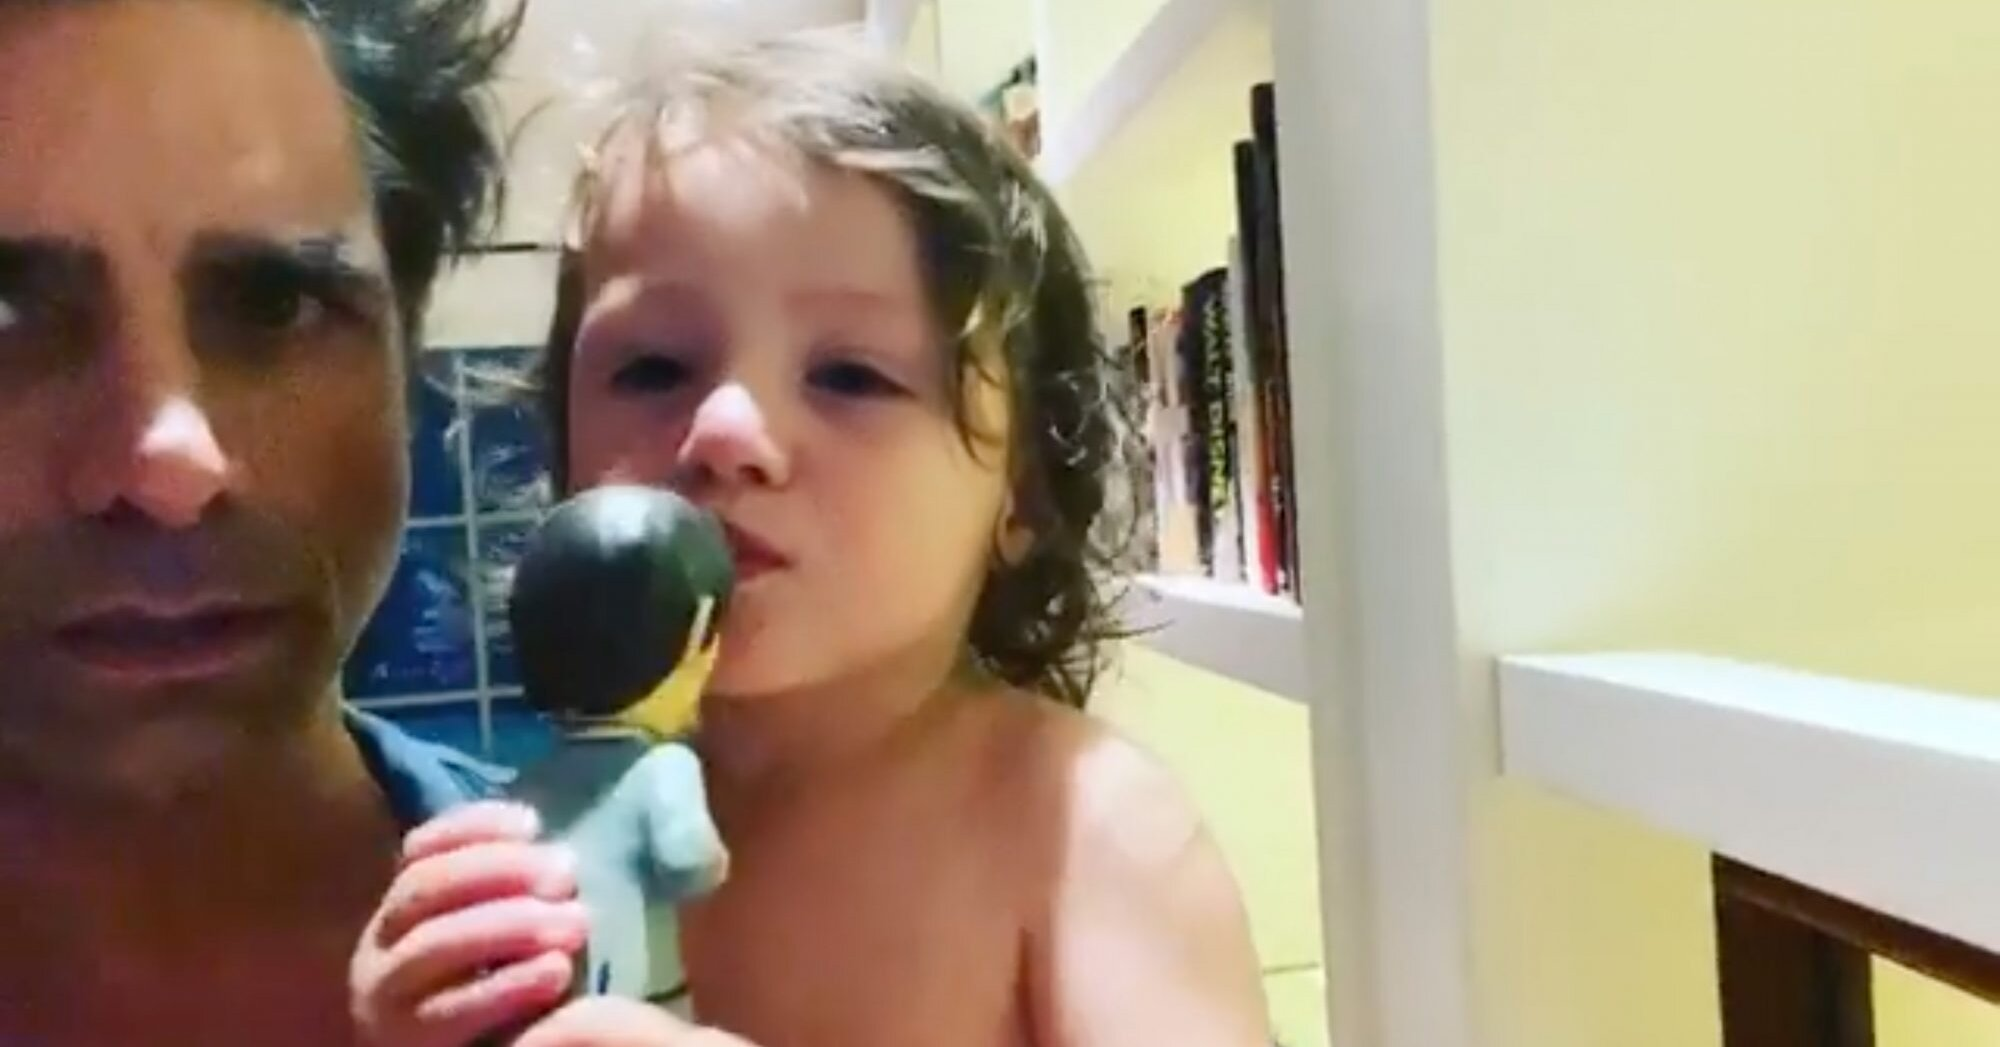 John Stamos' 2-Year-Old Son Gets Emotional Before Kissing The Beatles Goodnight: 'Ringo!'